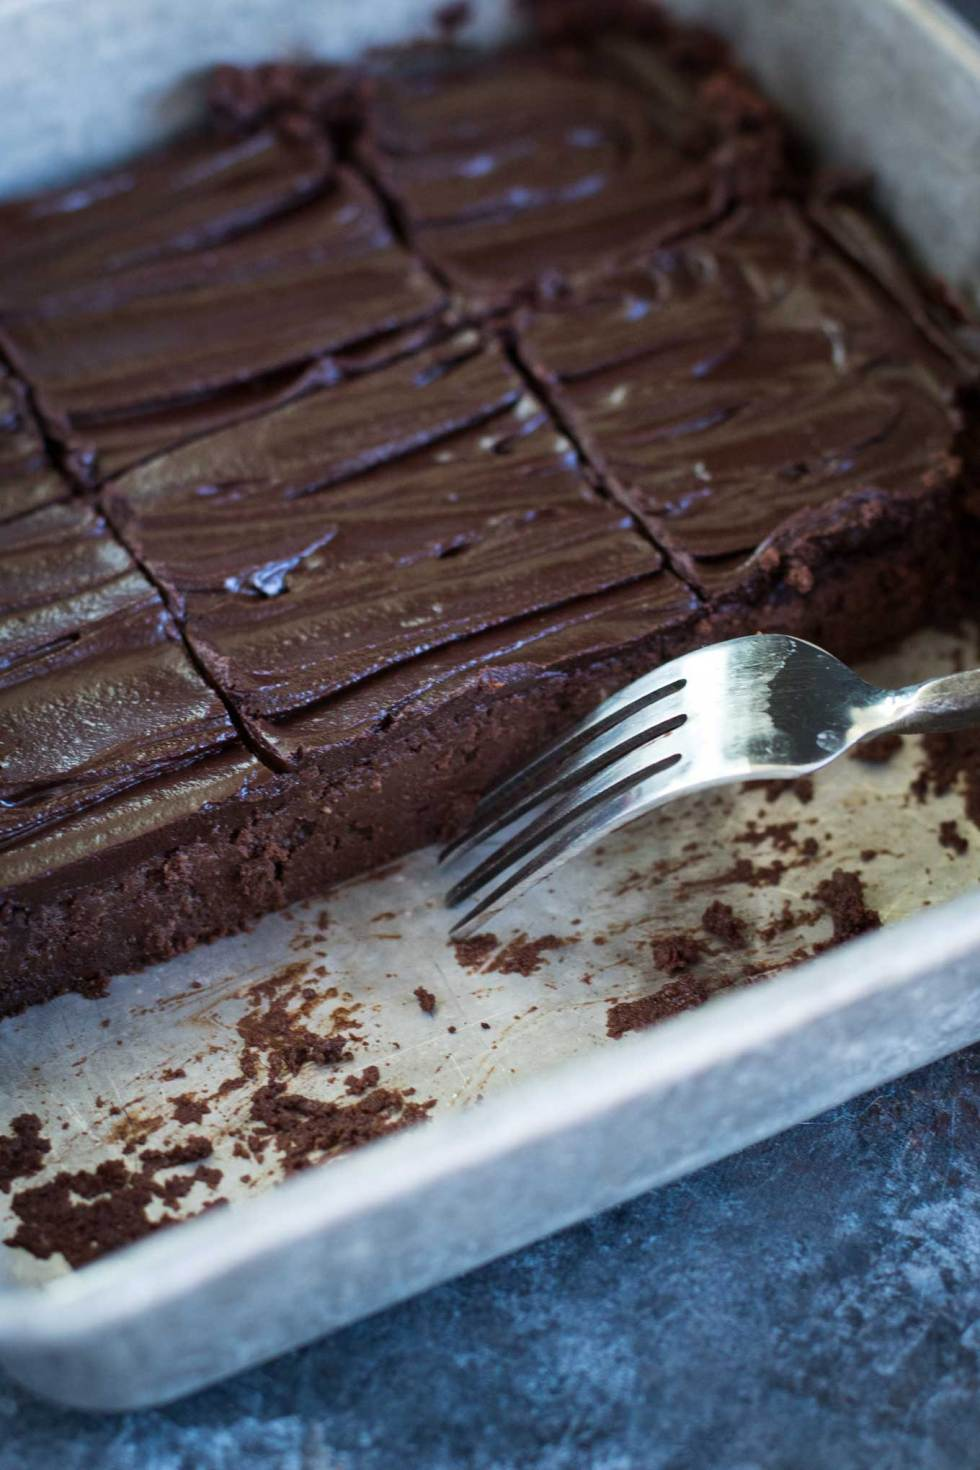 Close-up shot of half-full brownie pan with a fork resting in the pan and chocolate crumbs scattered